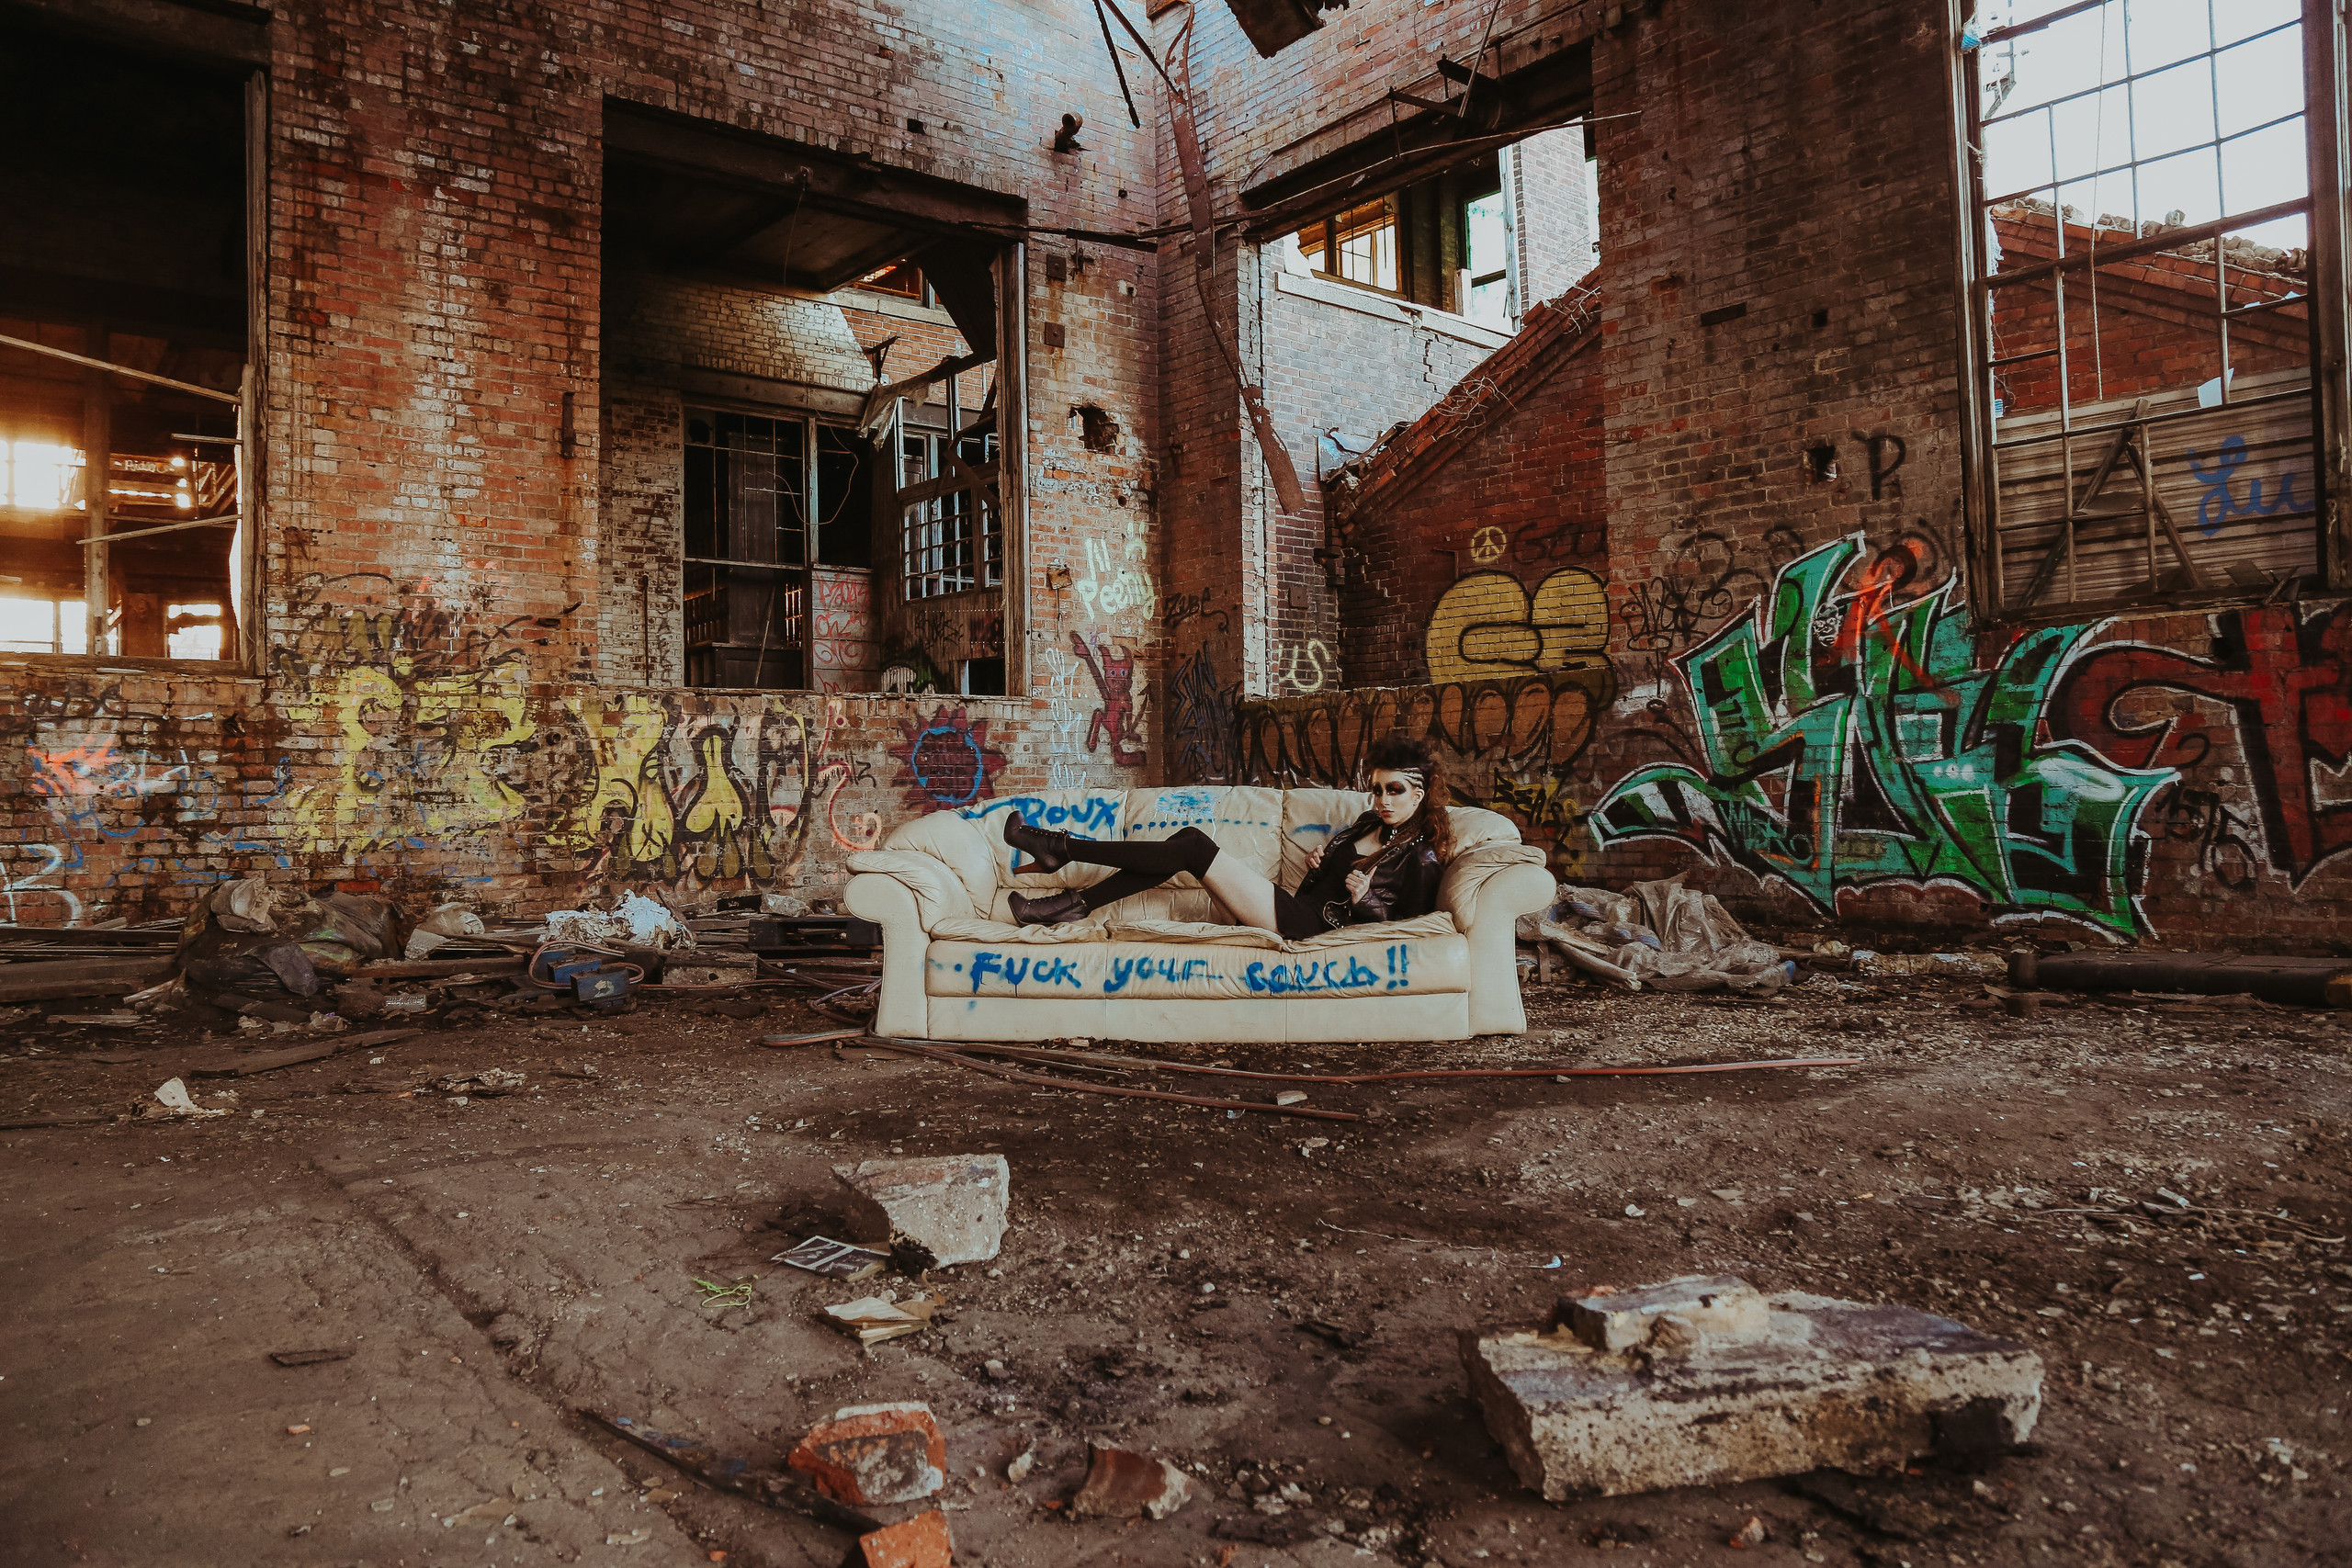 model laying on dirty fuck your couch in abandoned warehouse in milwaukee, wisconsin